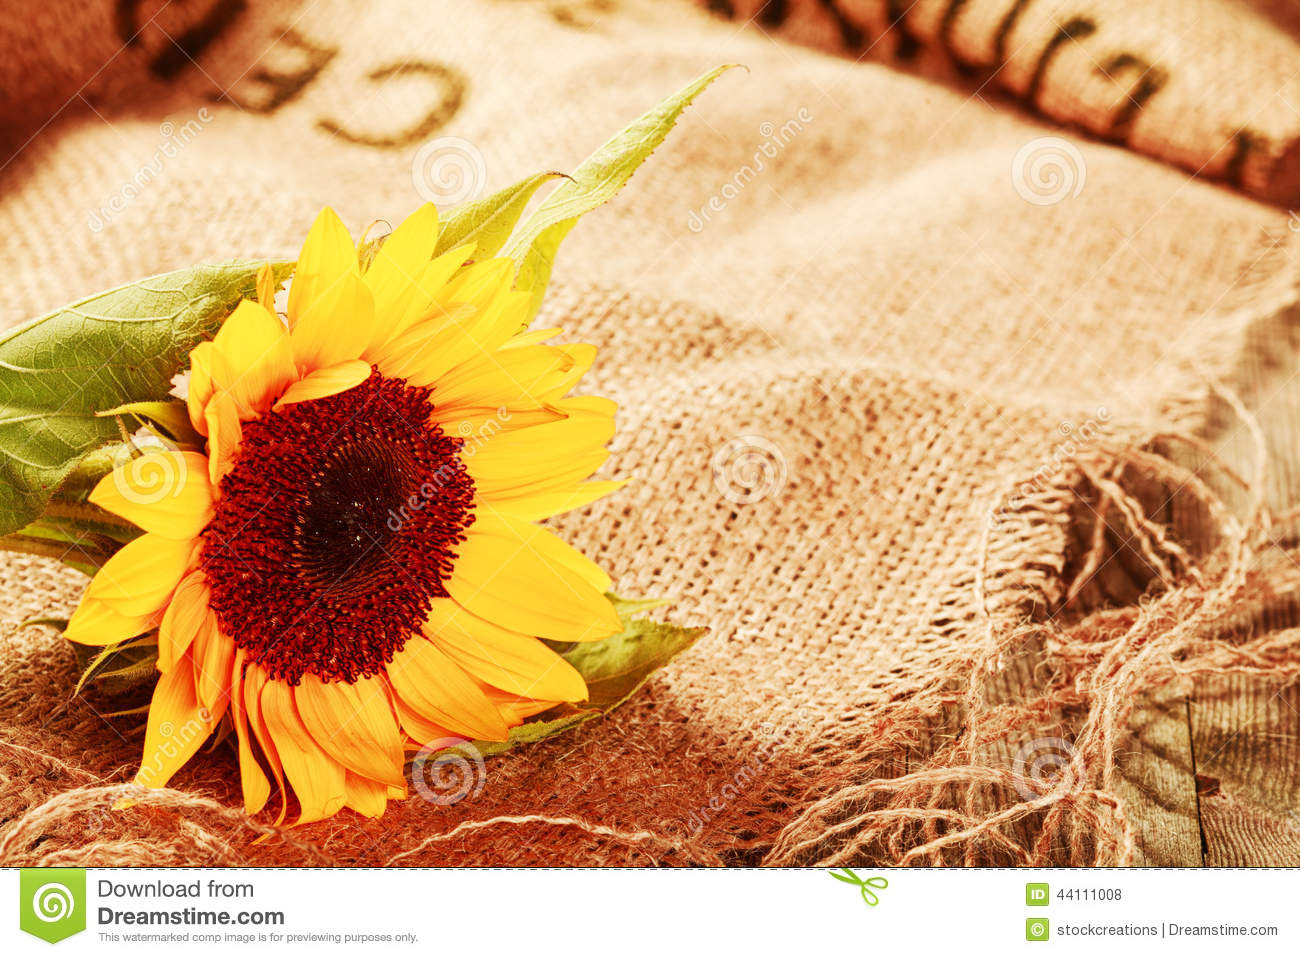 Fall Leaves Nd Burlap Wallpaper Beautiful Sunflower In A Rustic Background Stock Photo